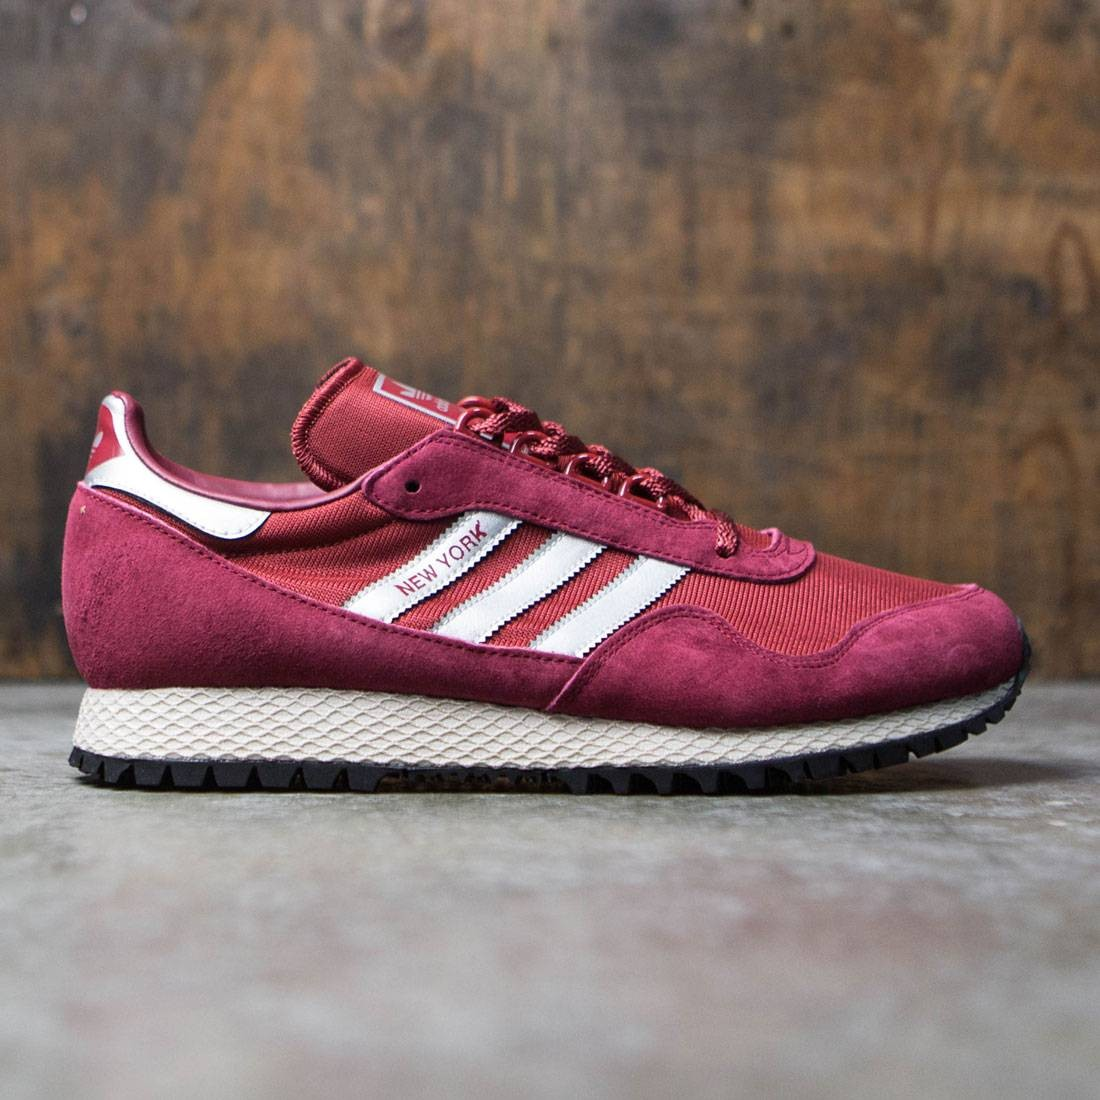 adidas new york red